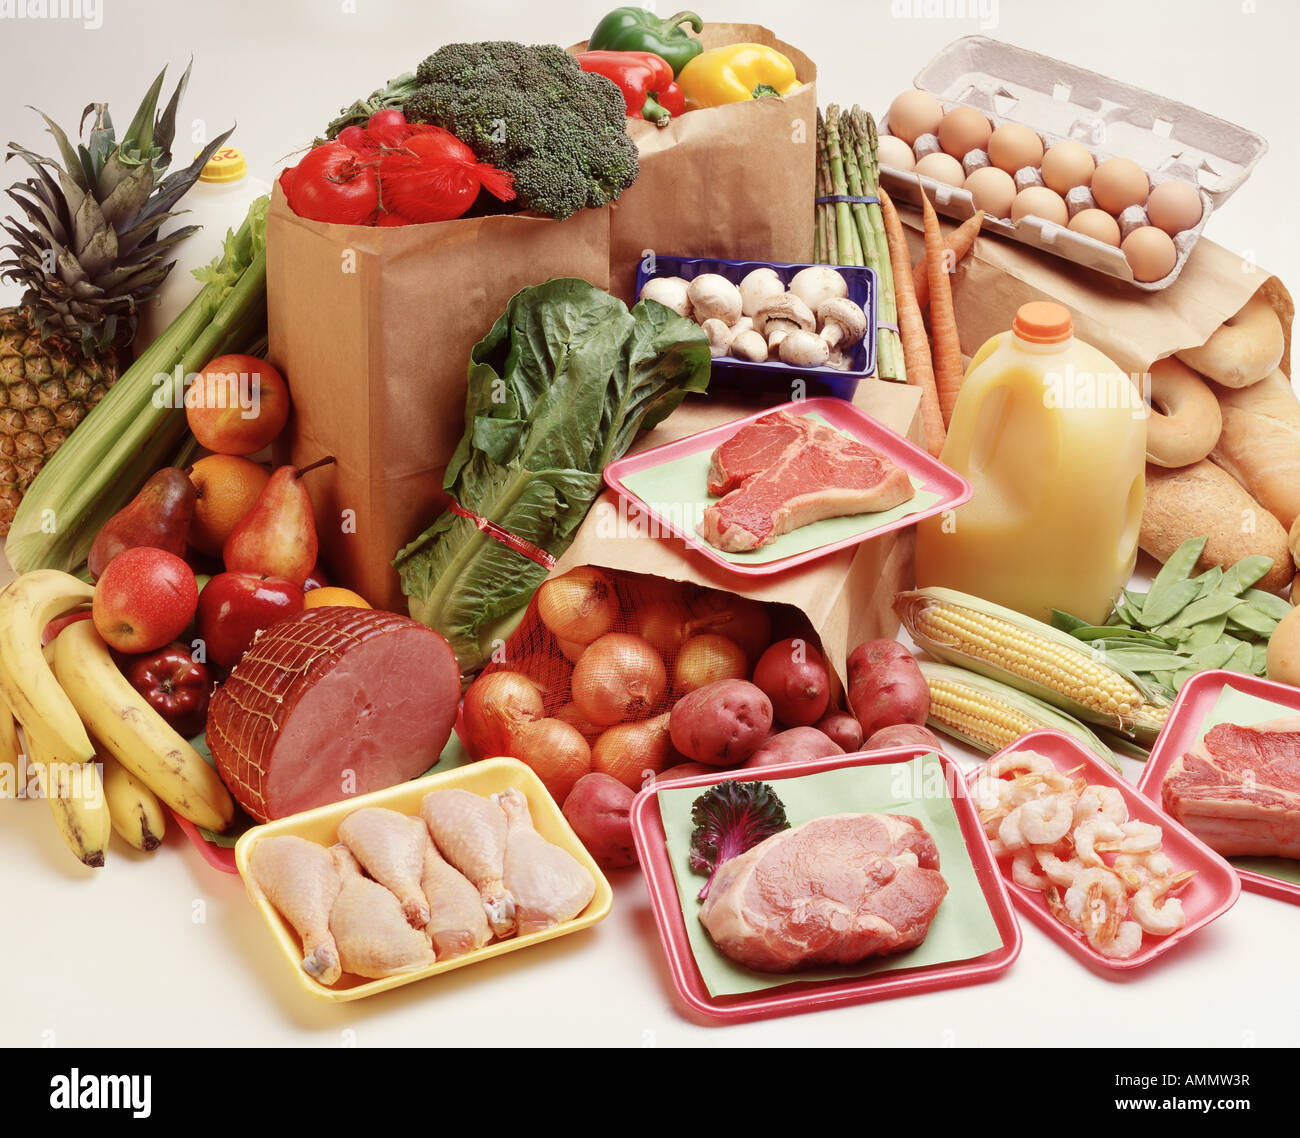 Good Food To Buy At The Grocery Store